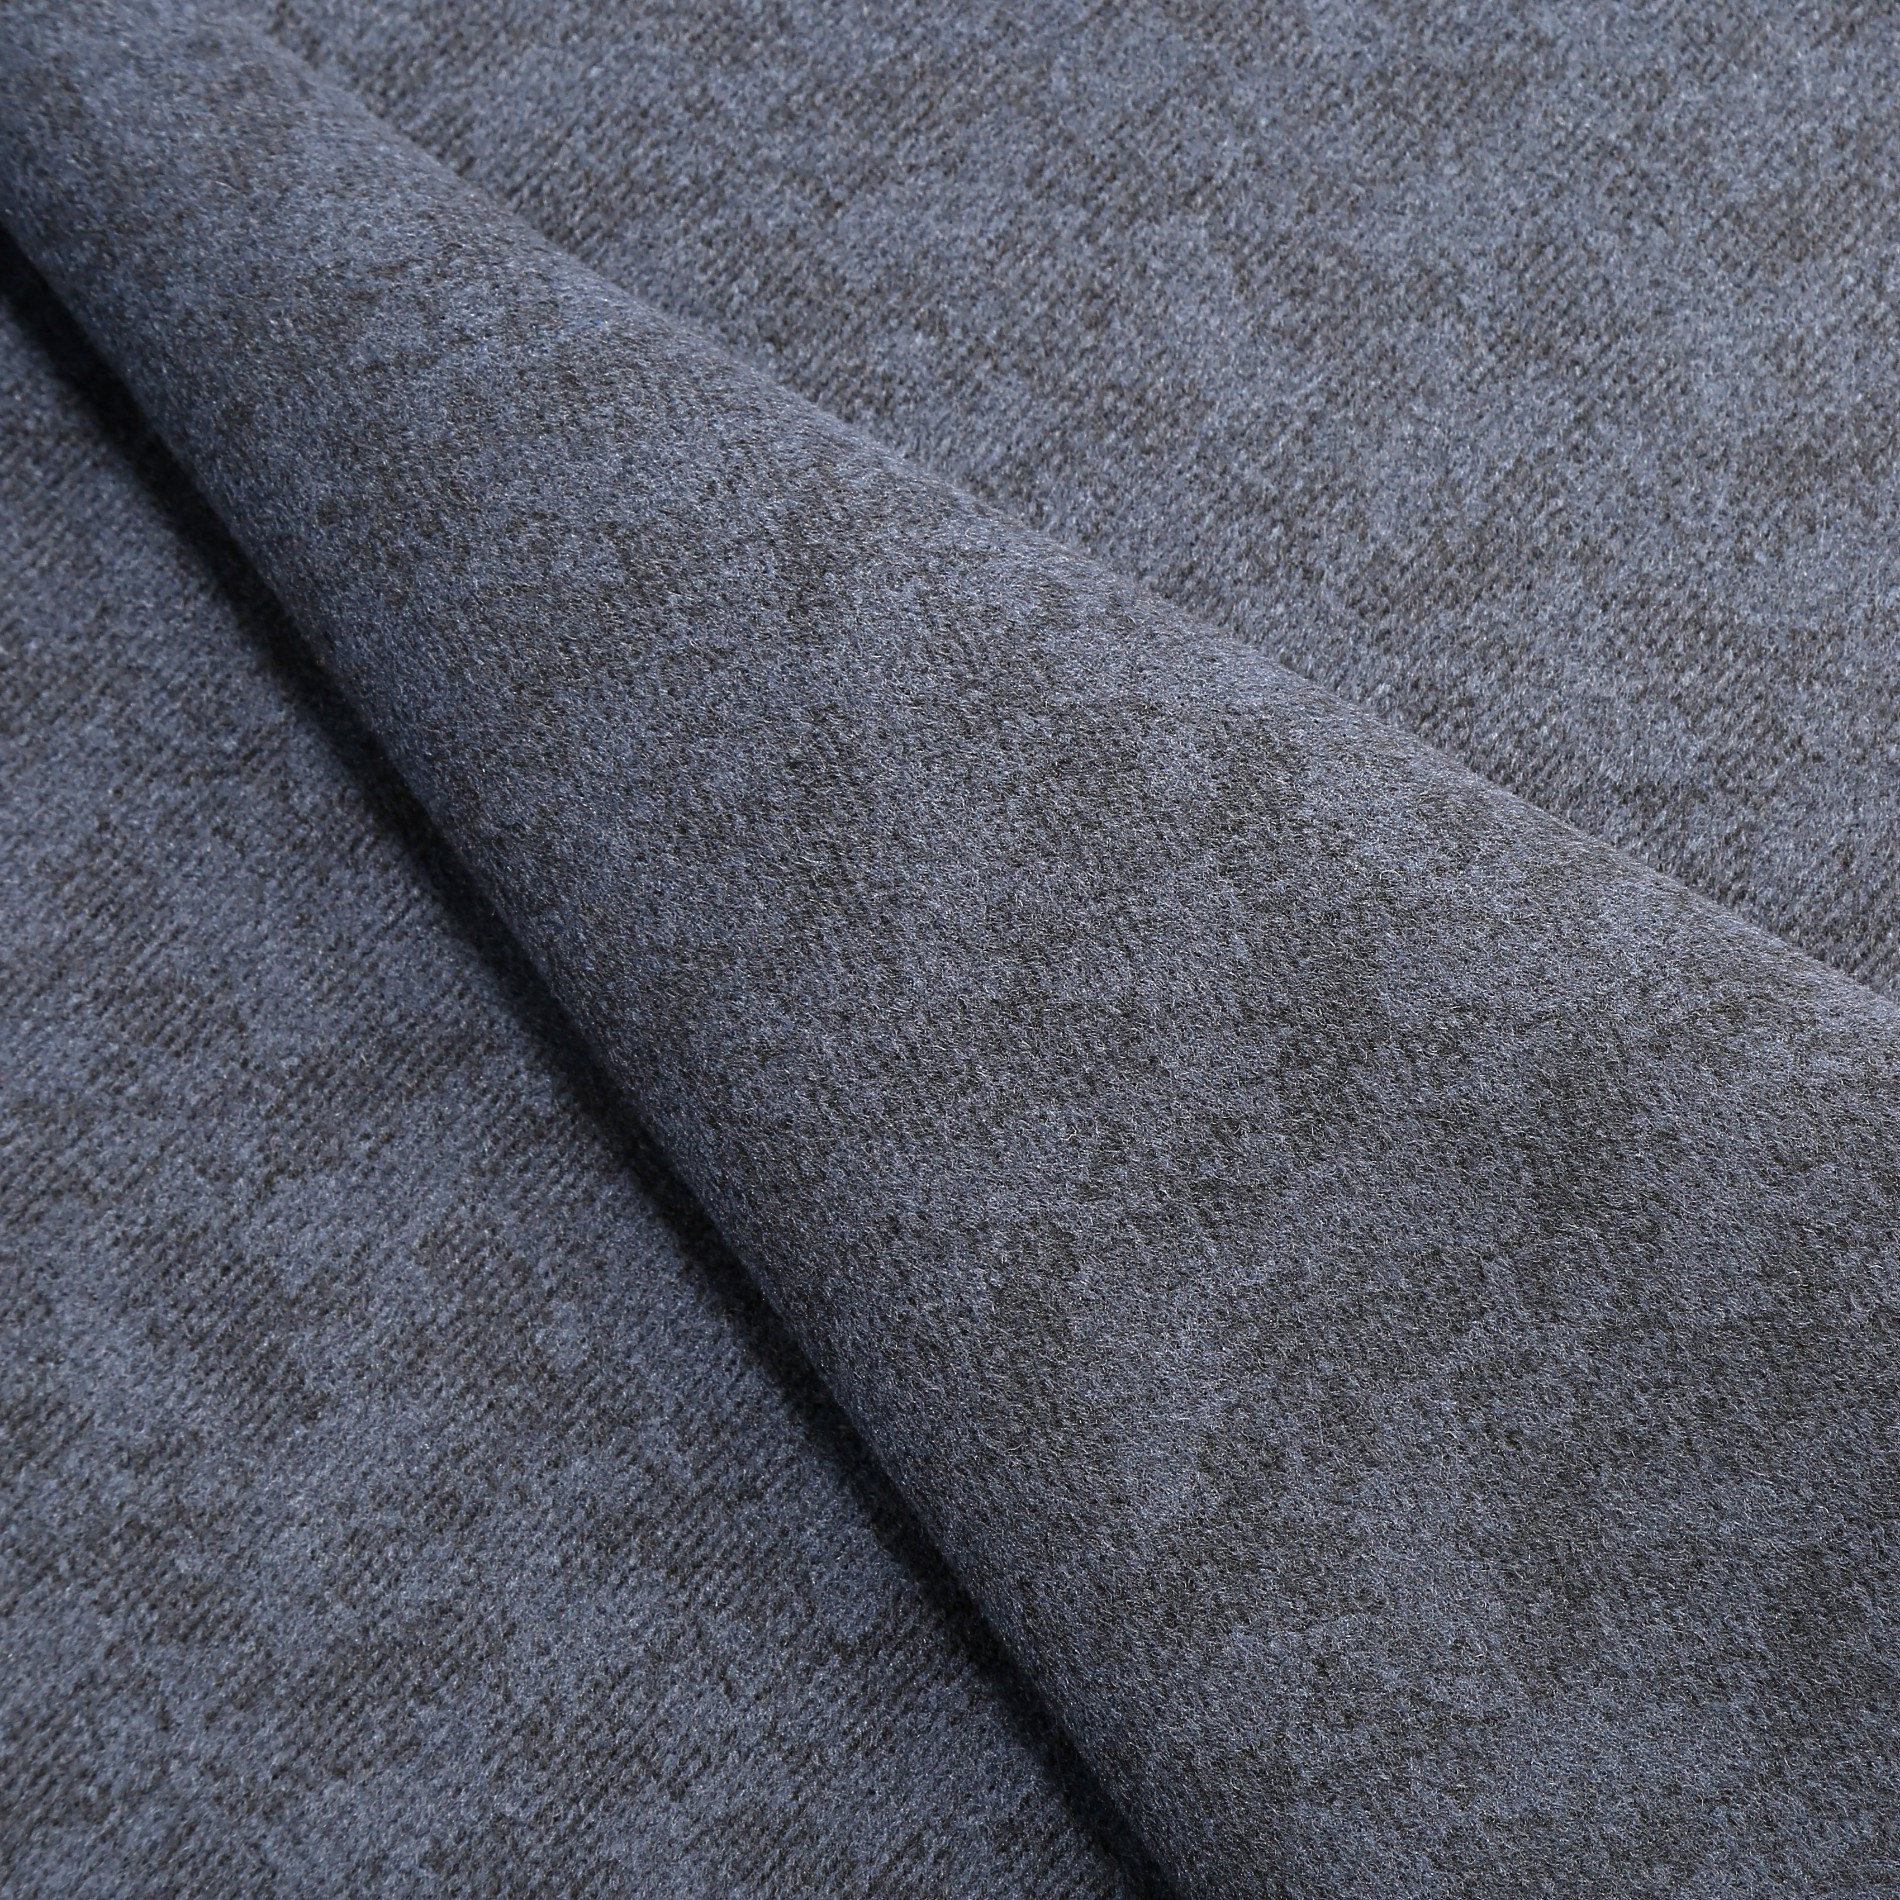 Wool Polyester Cotton Blends Fabric